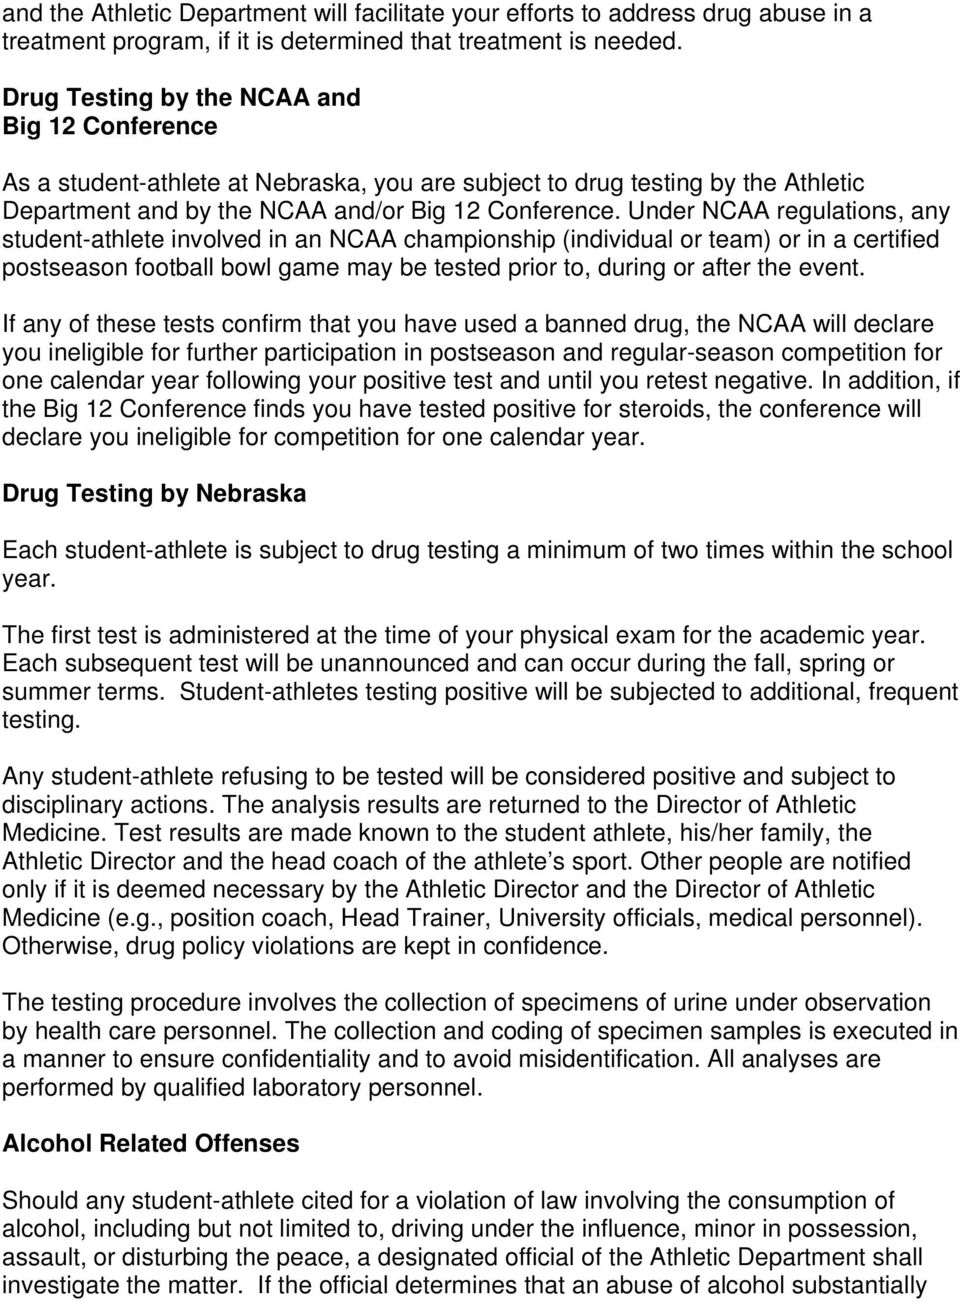 Under NCAA regulations, any student-athlete involved in an NCAA championship (individual or team) or in a certified postseason football bowl game may be tested prior to, during or after the event.